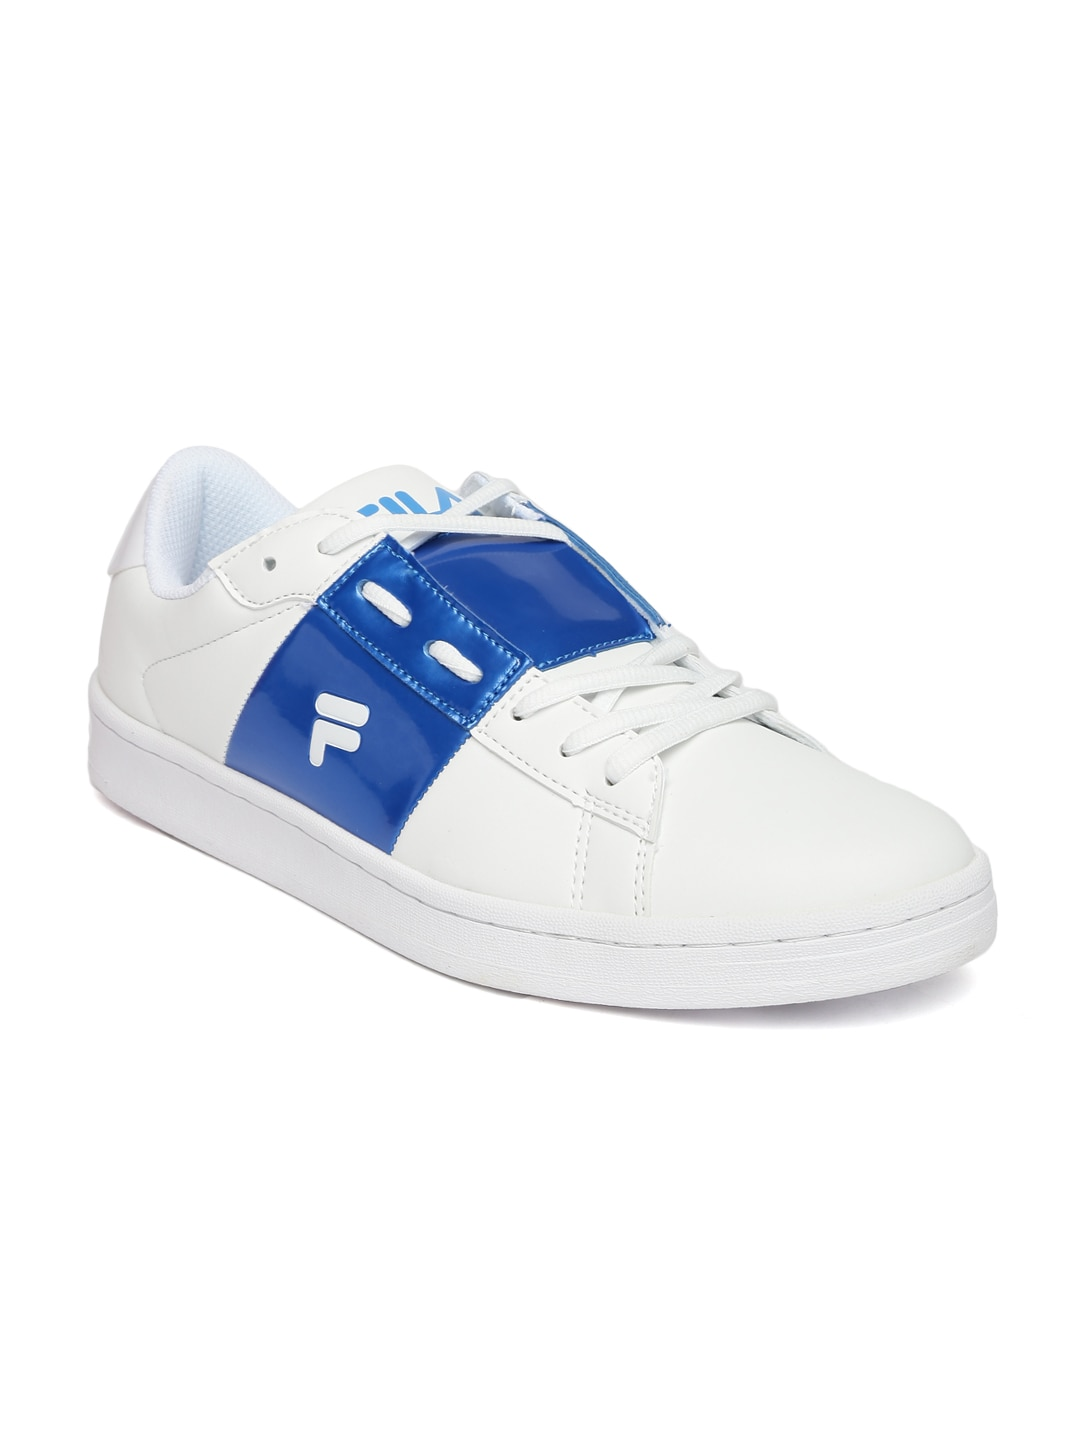 94ae2e491bc3 Fila Sneakers Shoes - Buy Fila Sneakers Shoes Online in India